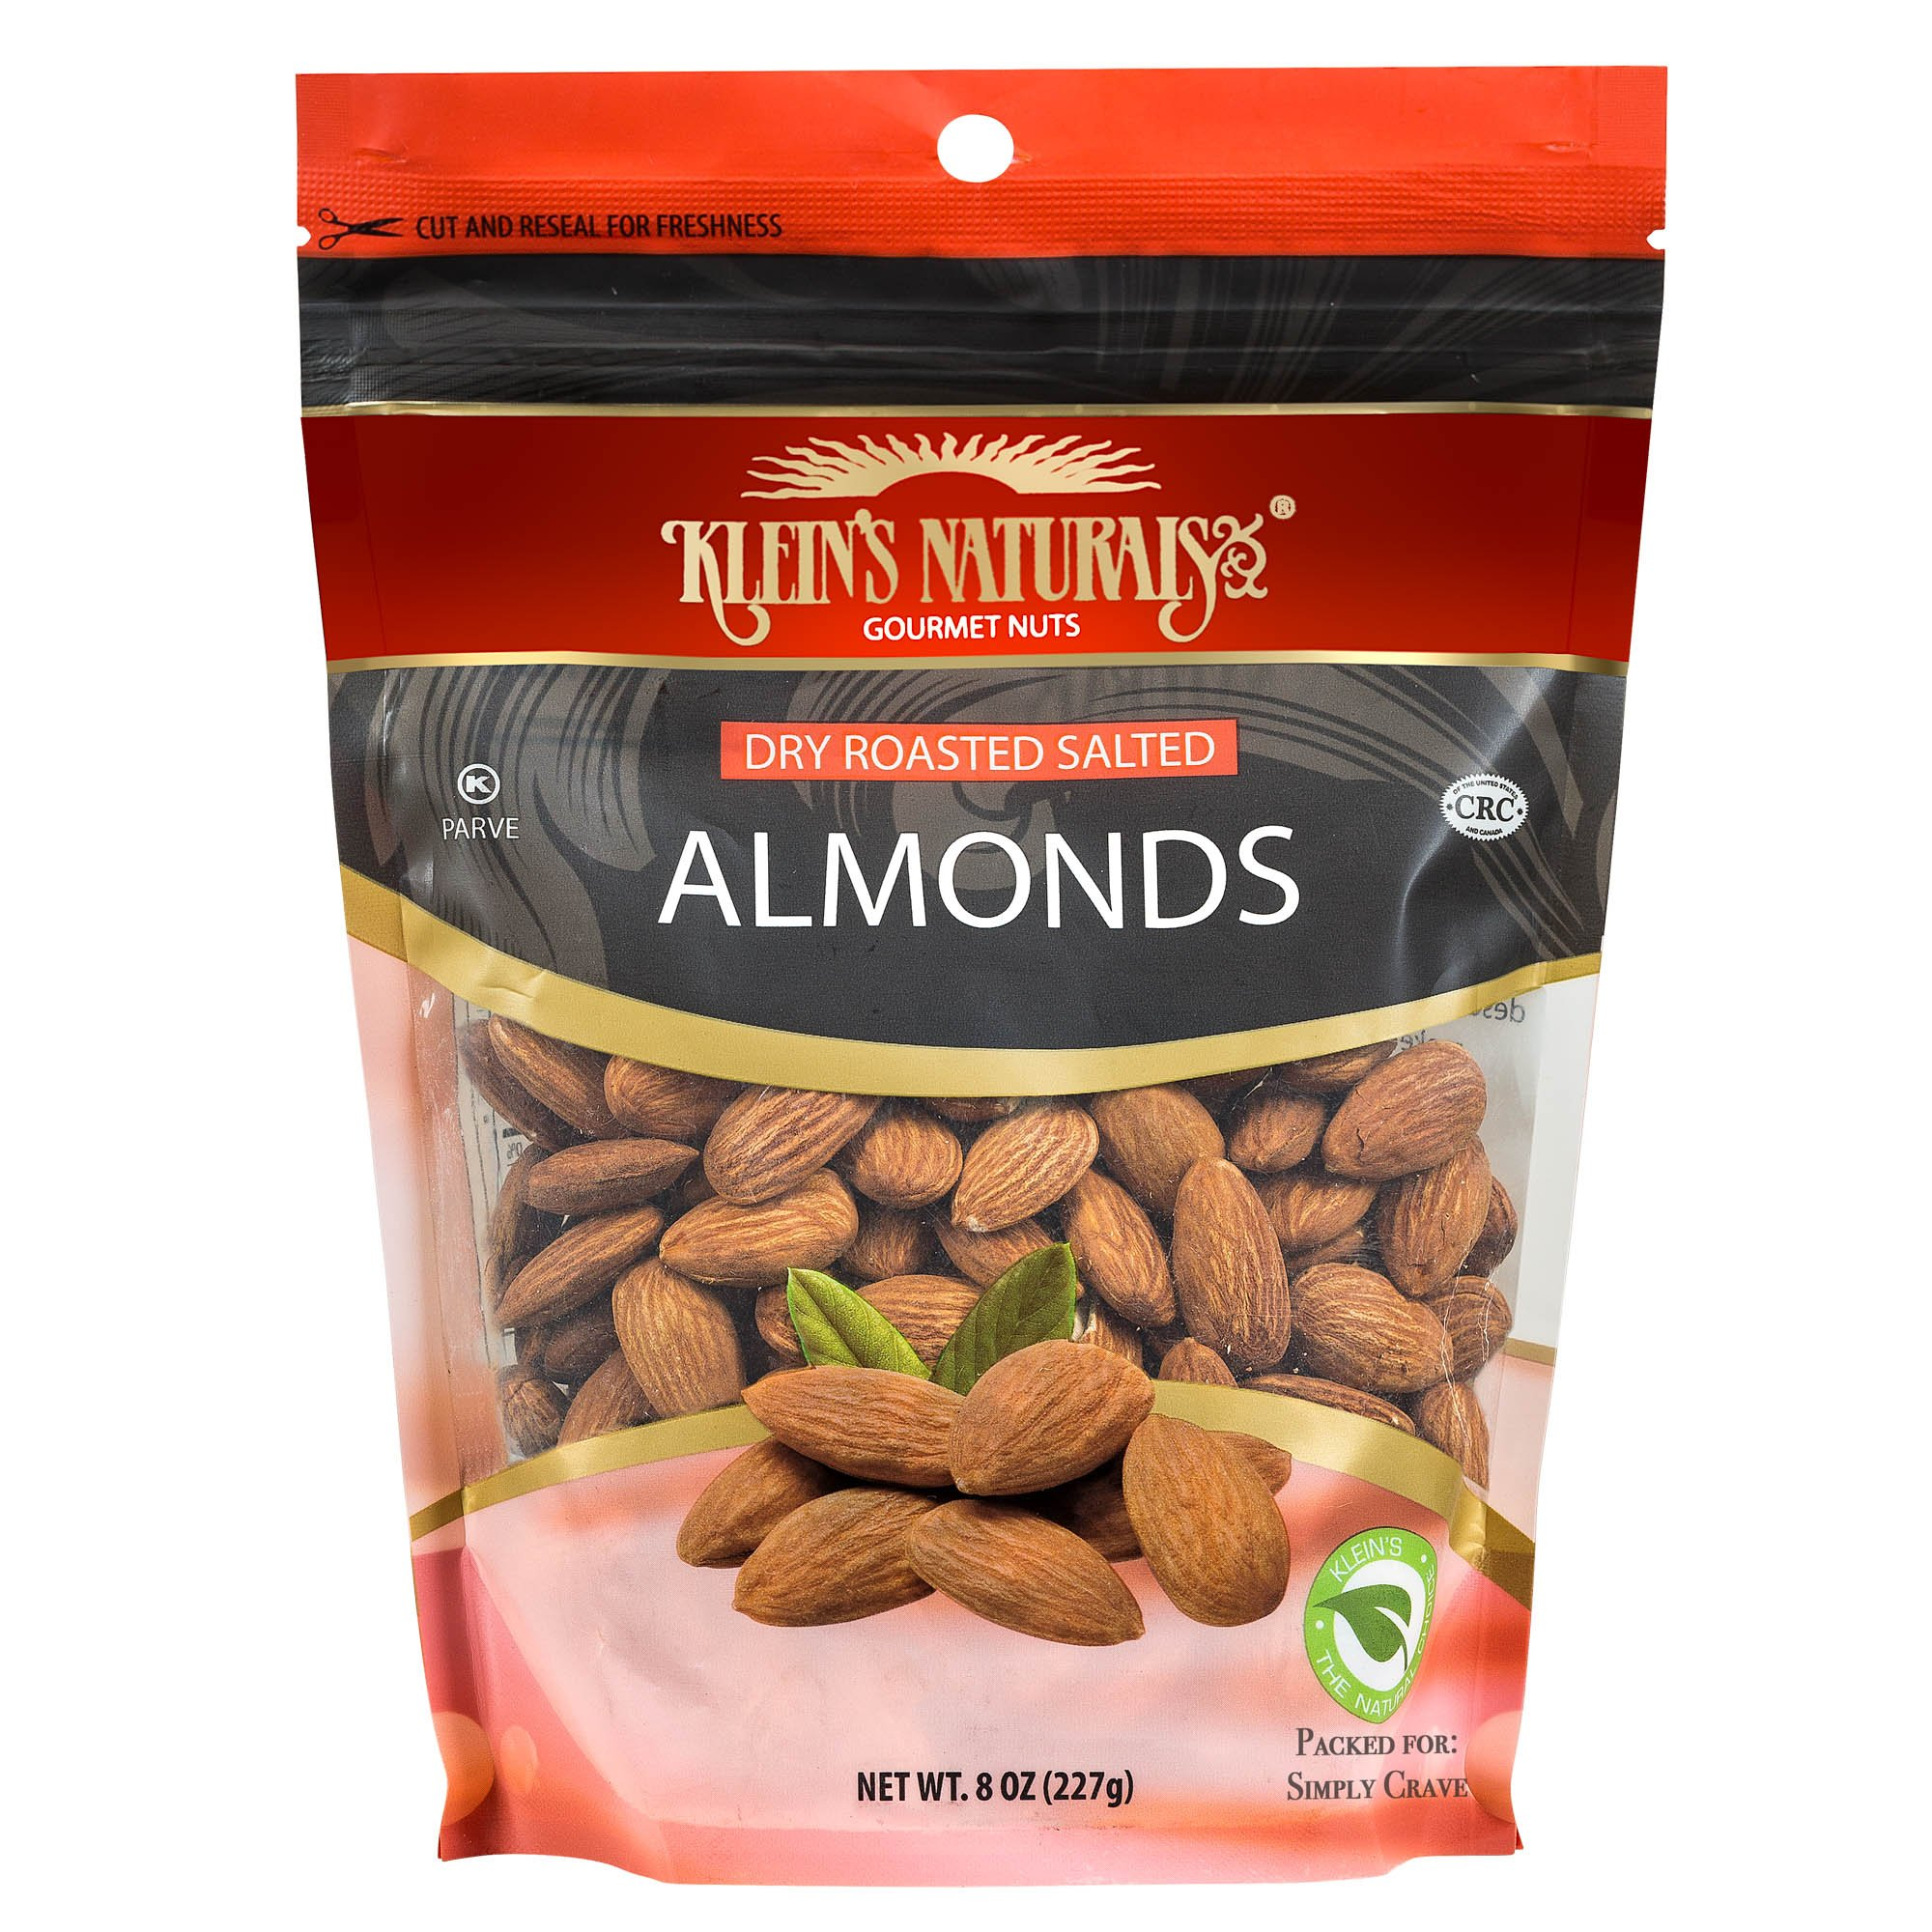 Kleins Natural's Dry Roasted and Salted Almonds, Almond Nuts, Dry Roasted Almonds Salted, Quick Healthy Almond Snack, 8-Ounce (Pack of 4)